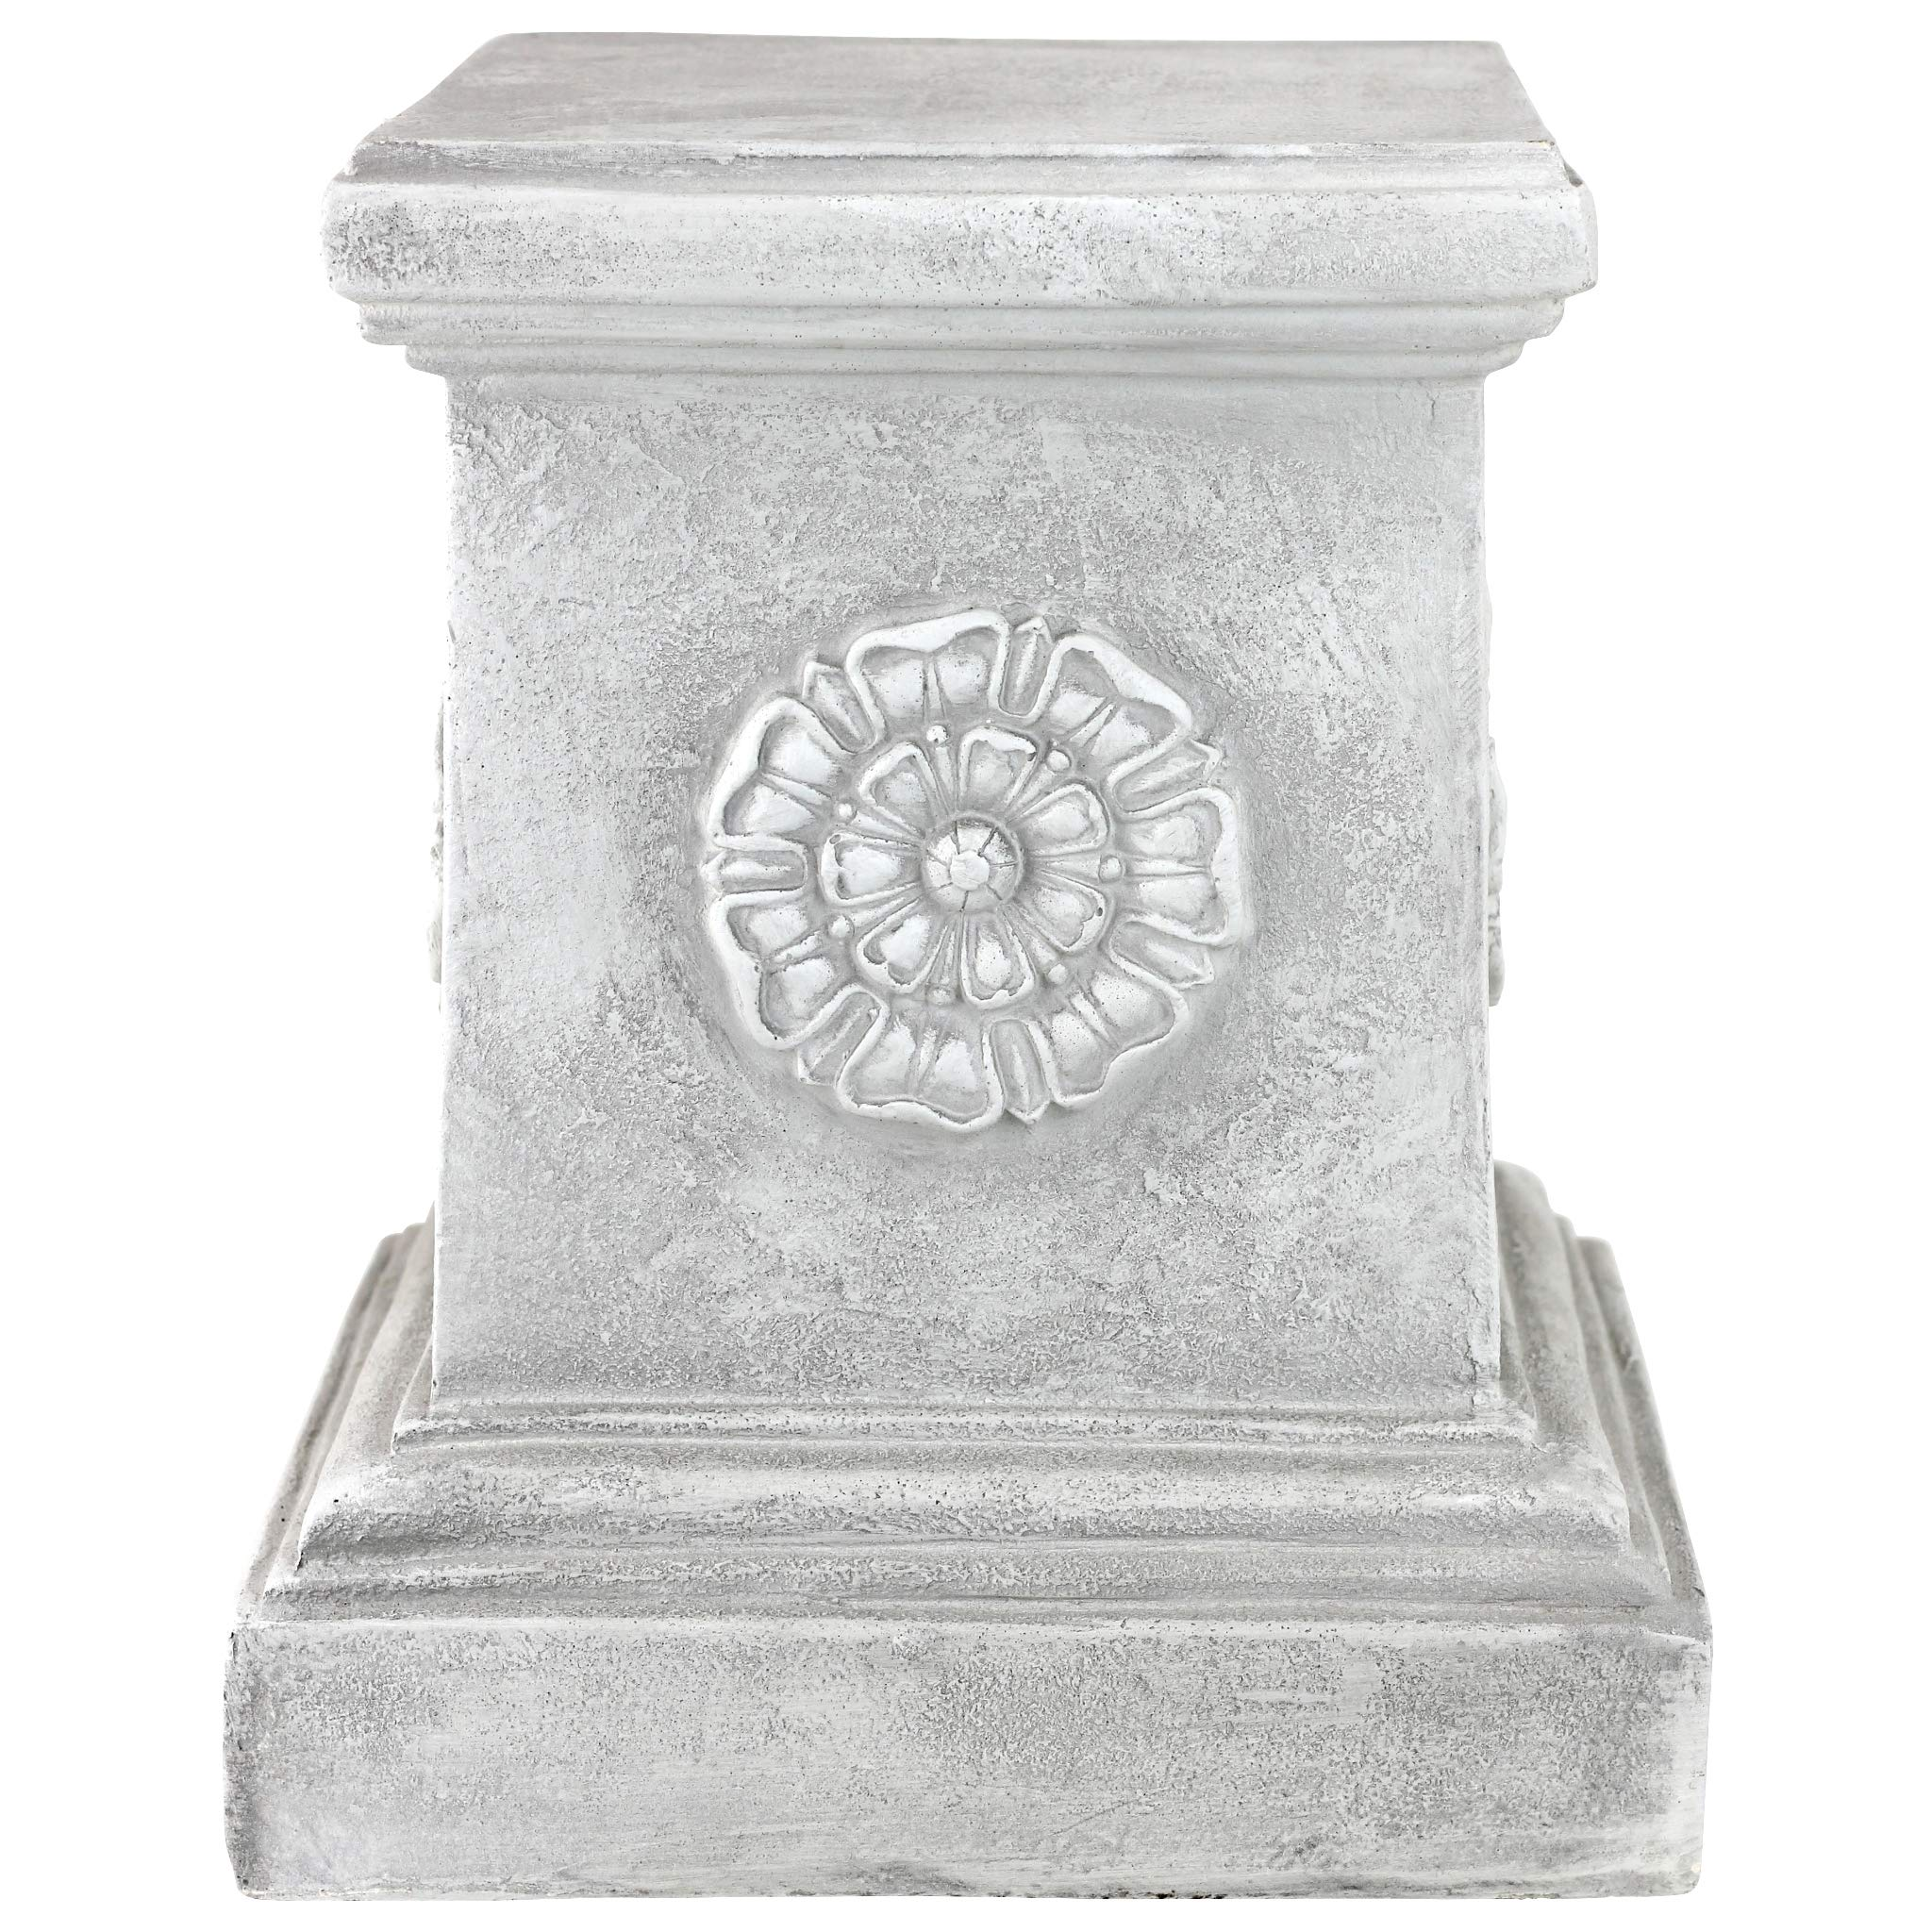 Design Toscano English Rosette Sculptural Garden Plinth Base Riser, Large 13 Inch, Polyresin, Antique Stone by Design Toscano (Image #3)